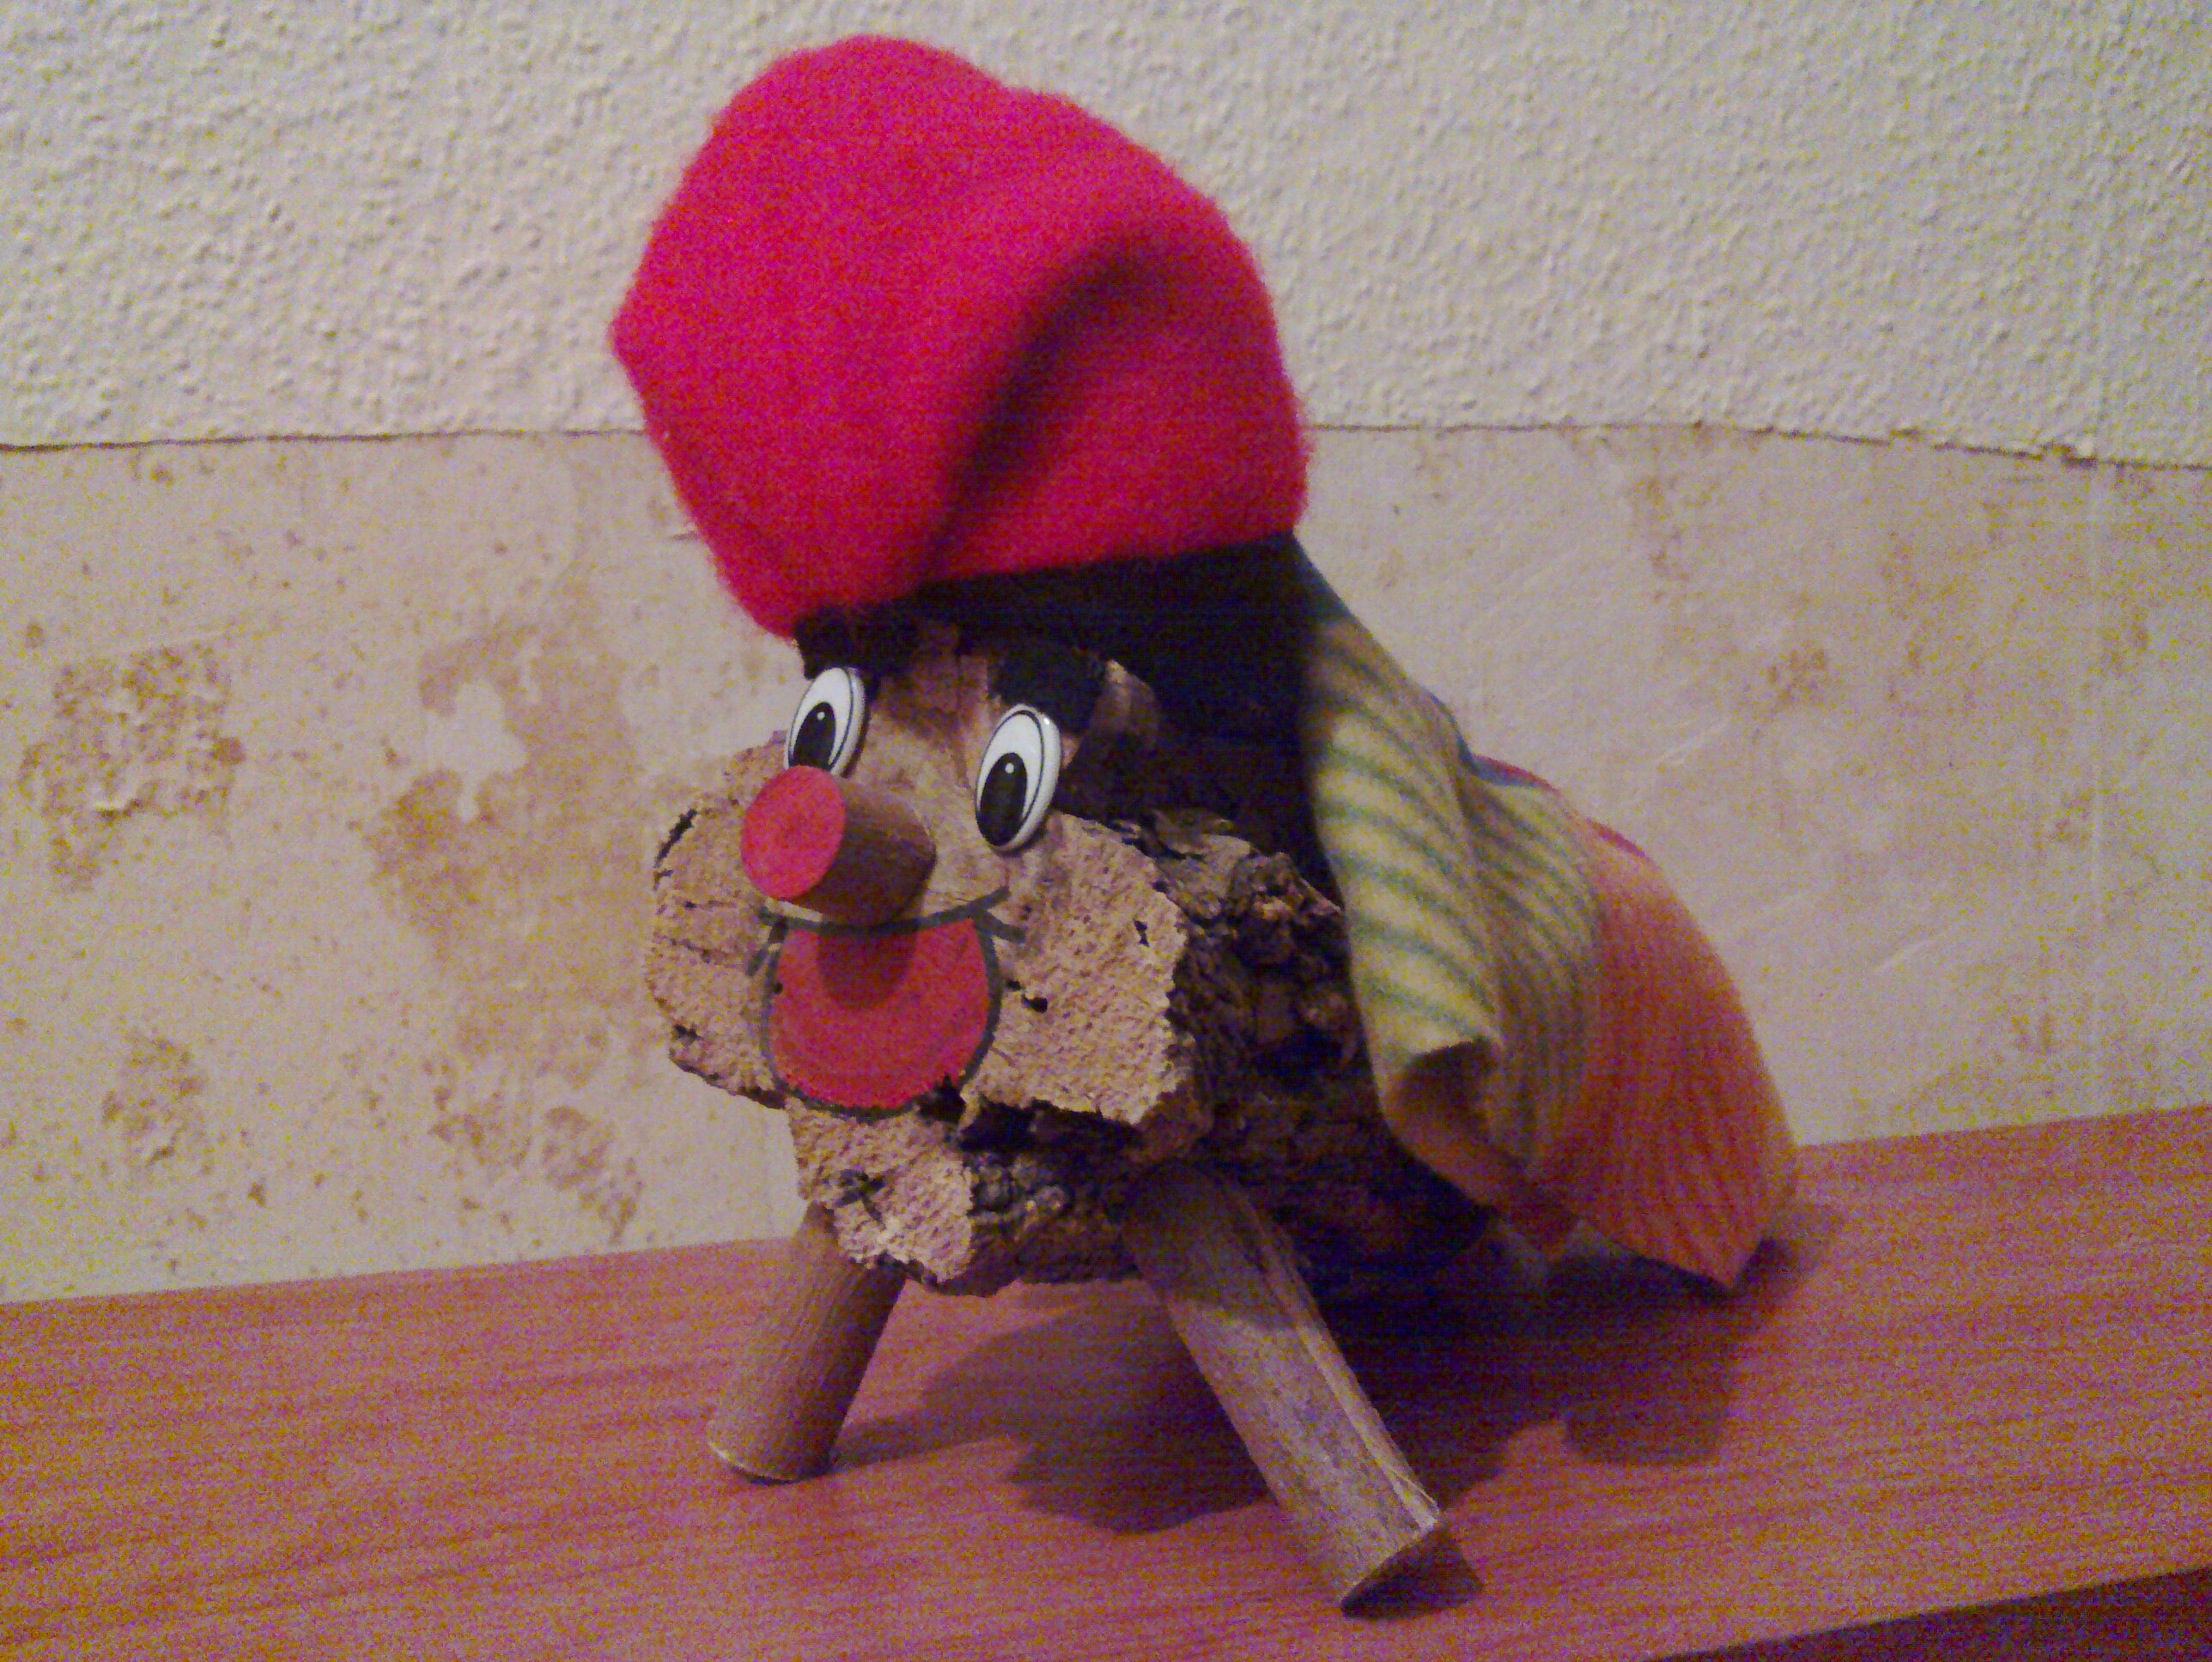 File:Tio de nadal petit decoratiu.jpg - Wikimedia Commons